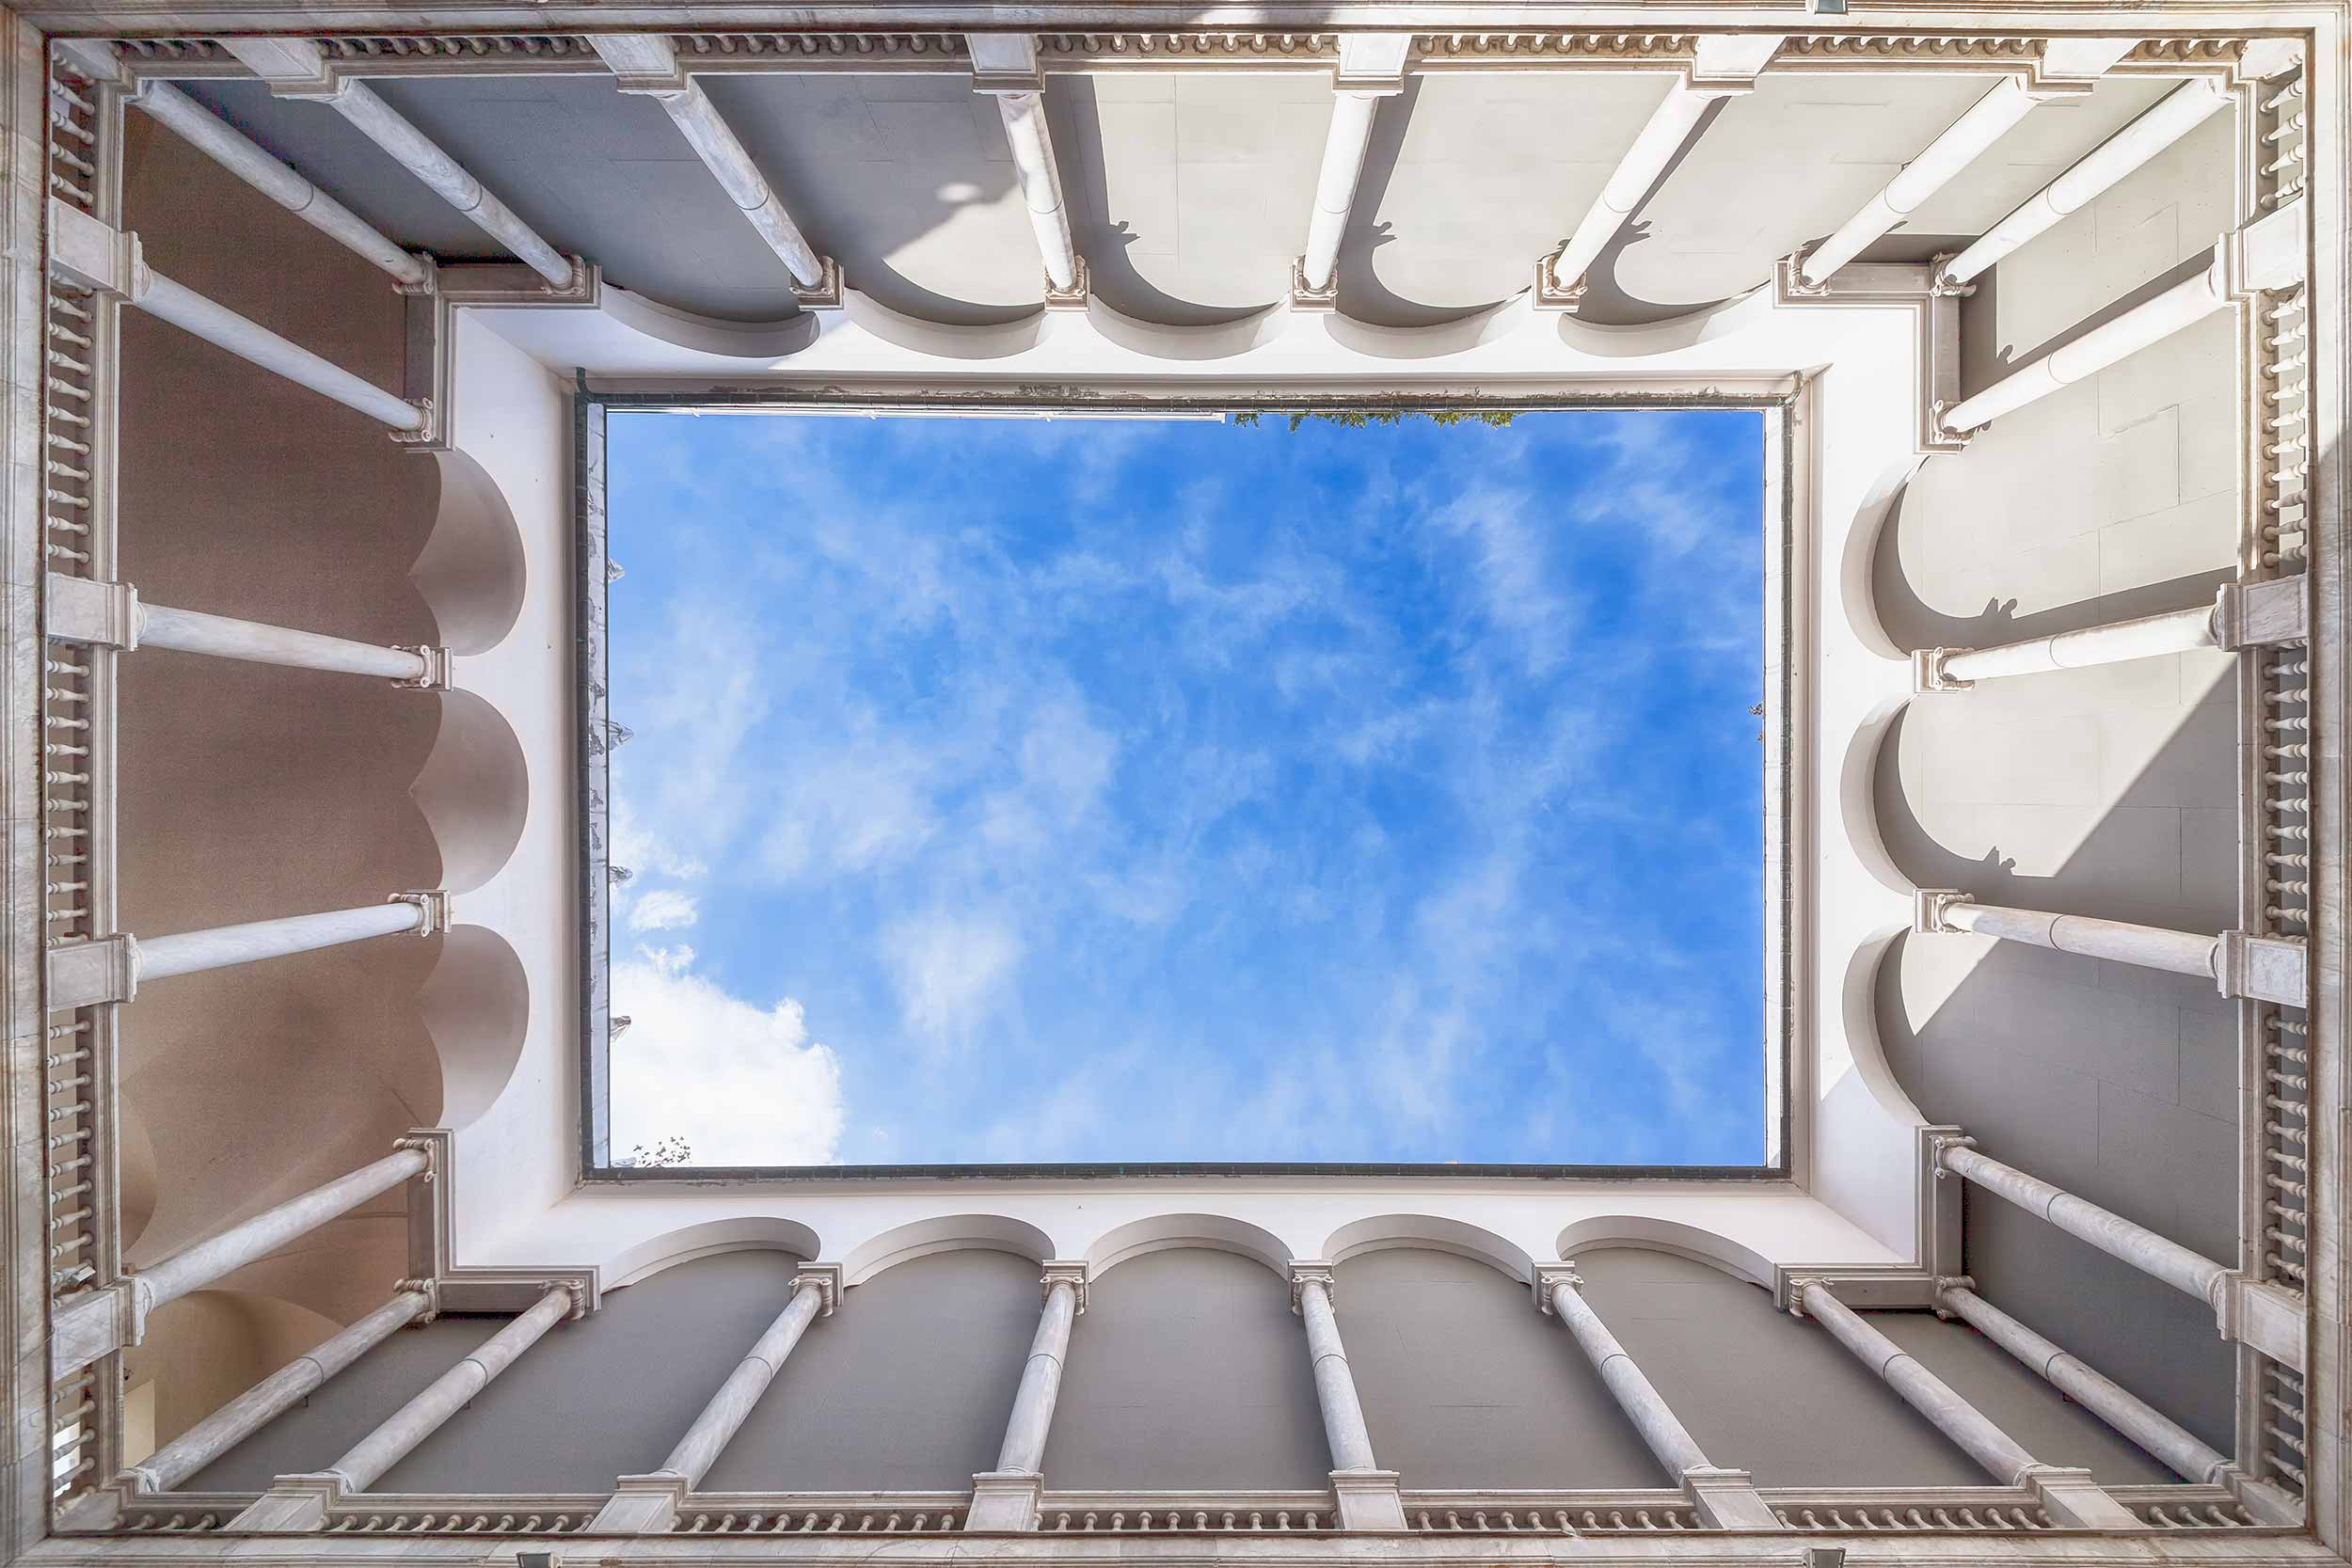 A courtyard in genoa italy and a blue sky overhead